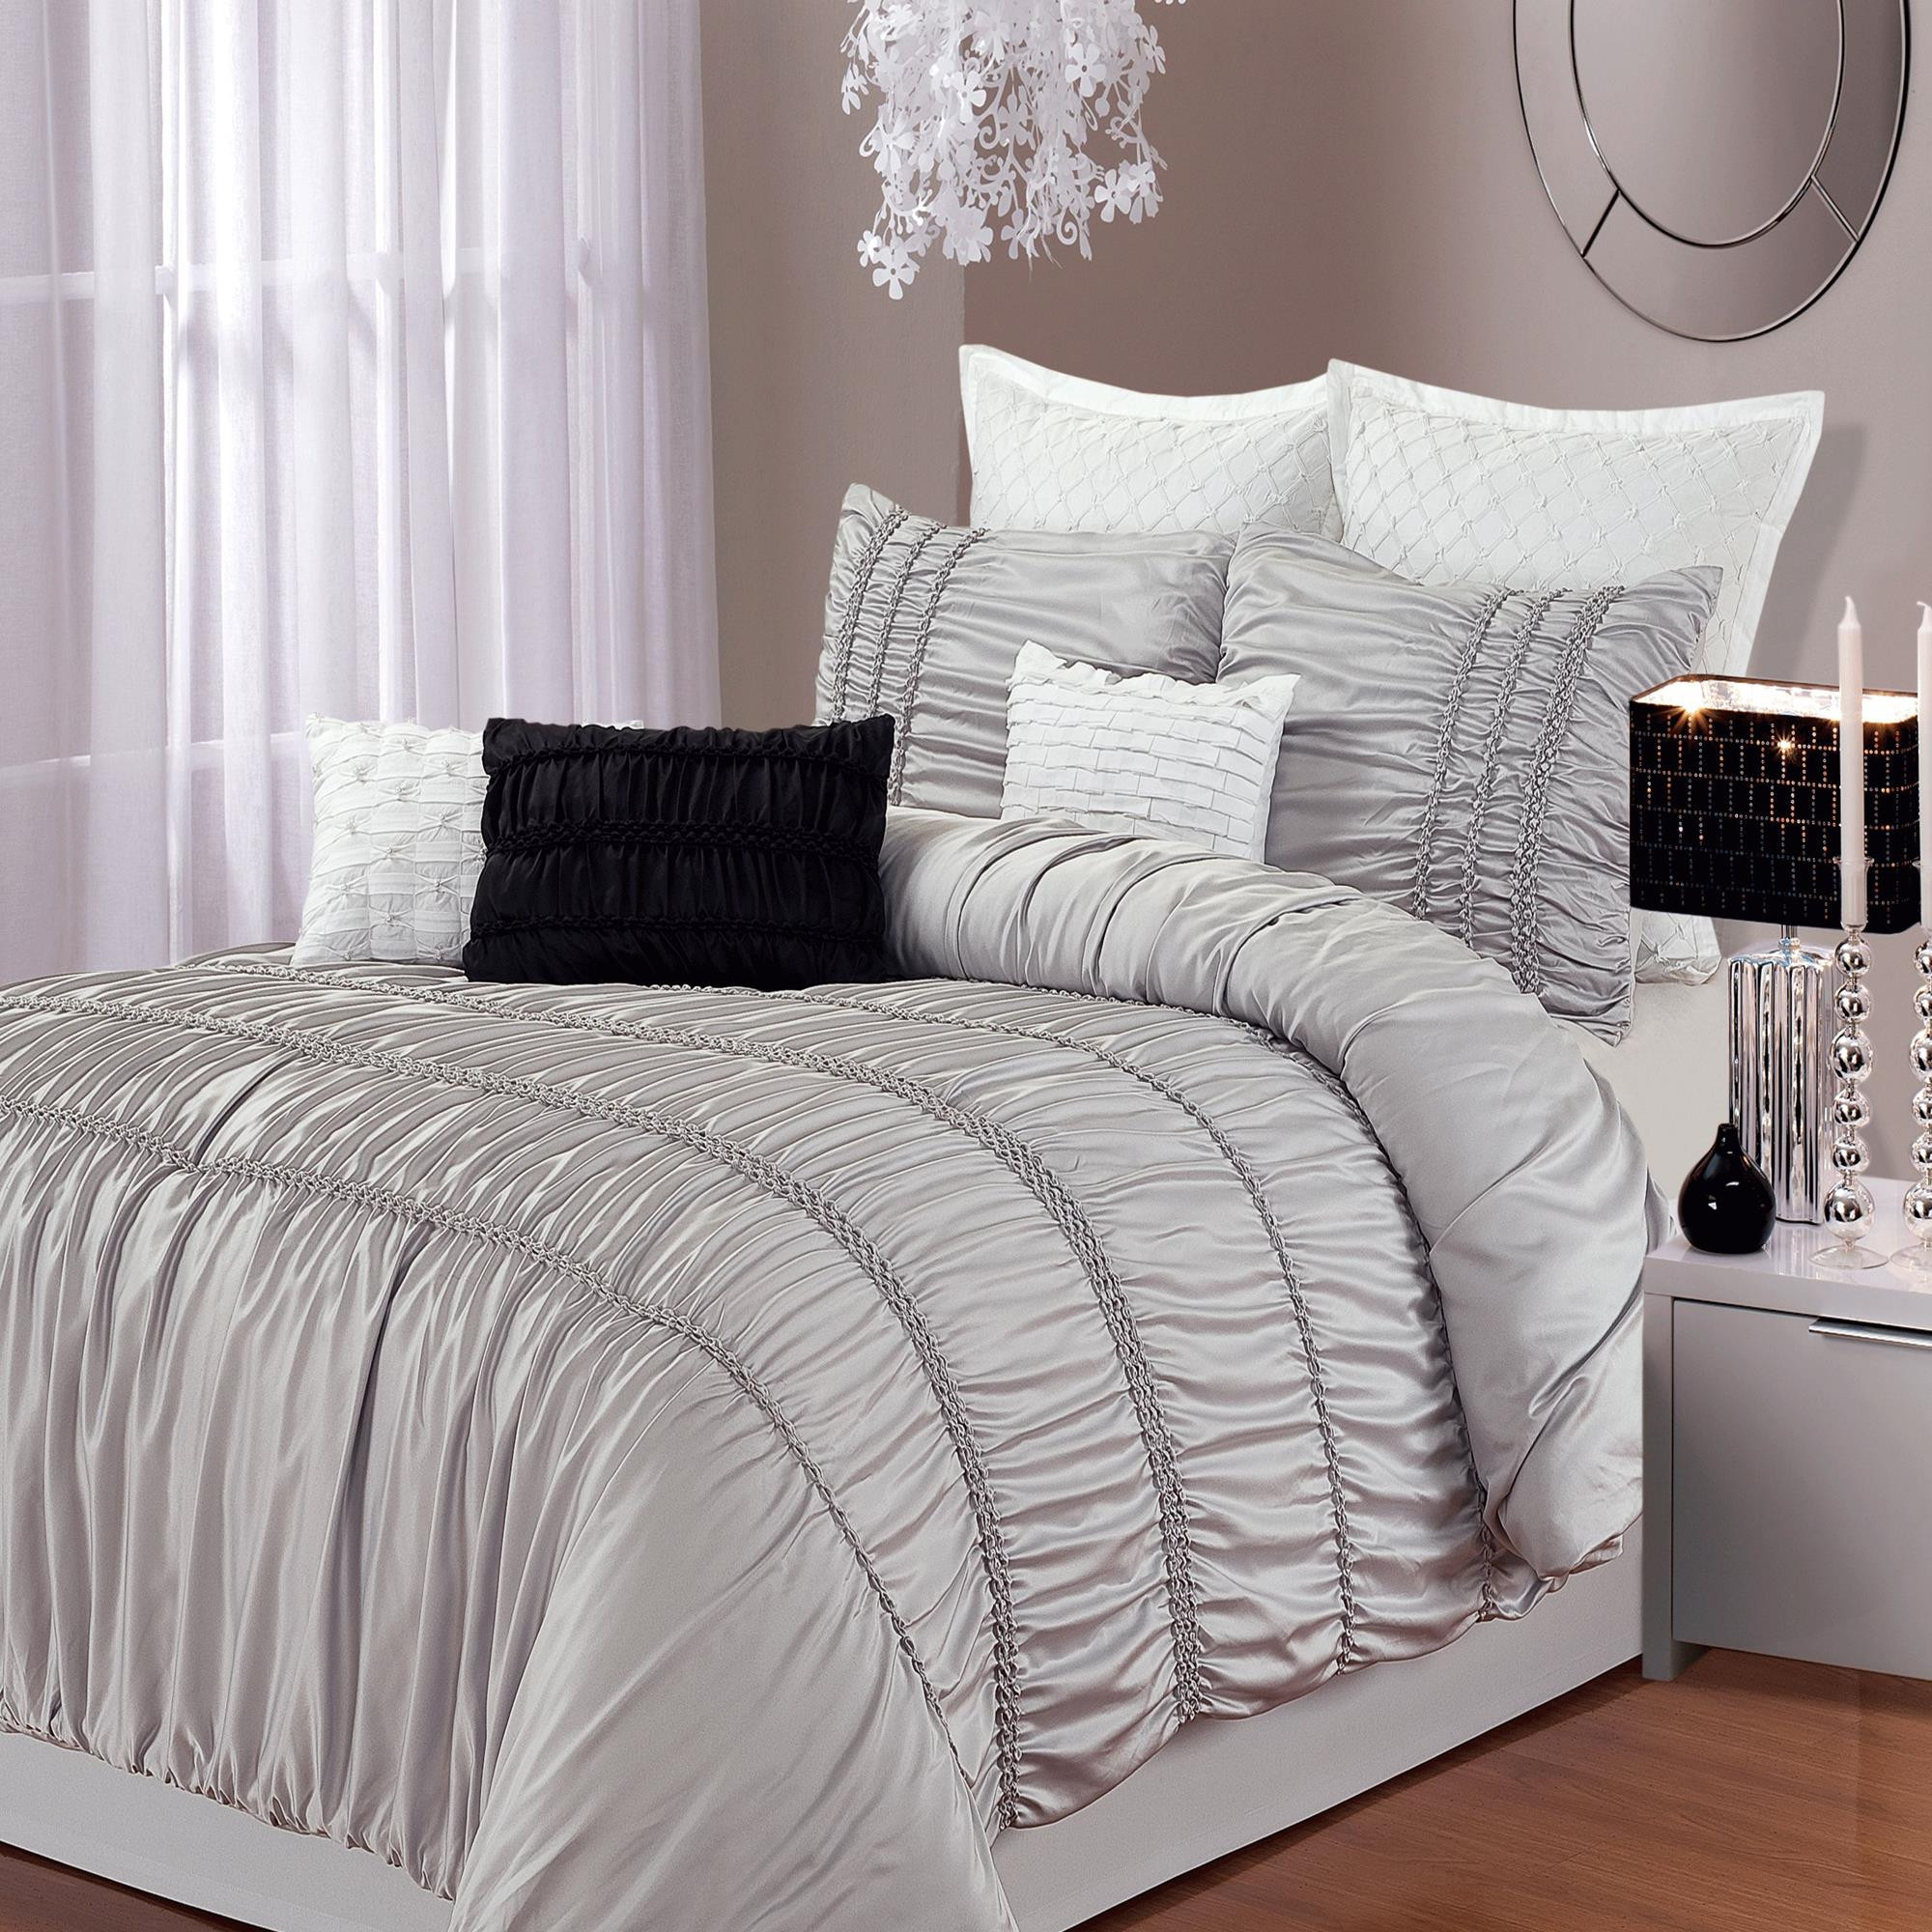 Romantica Silver 5 Piece Comforter Bed In A Bag Set